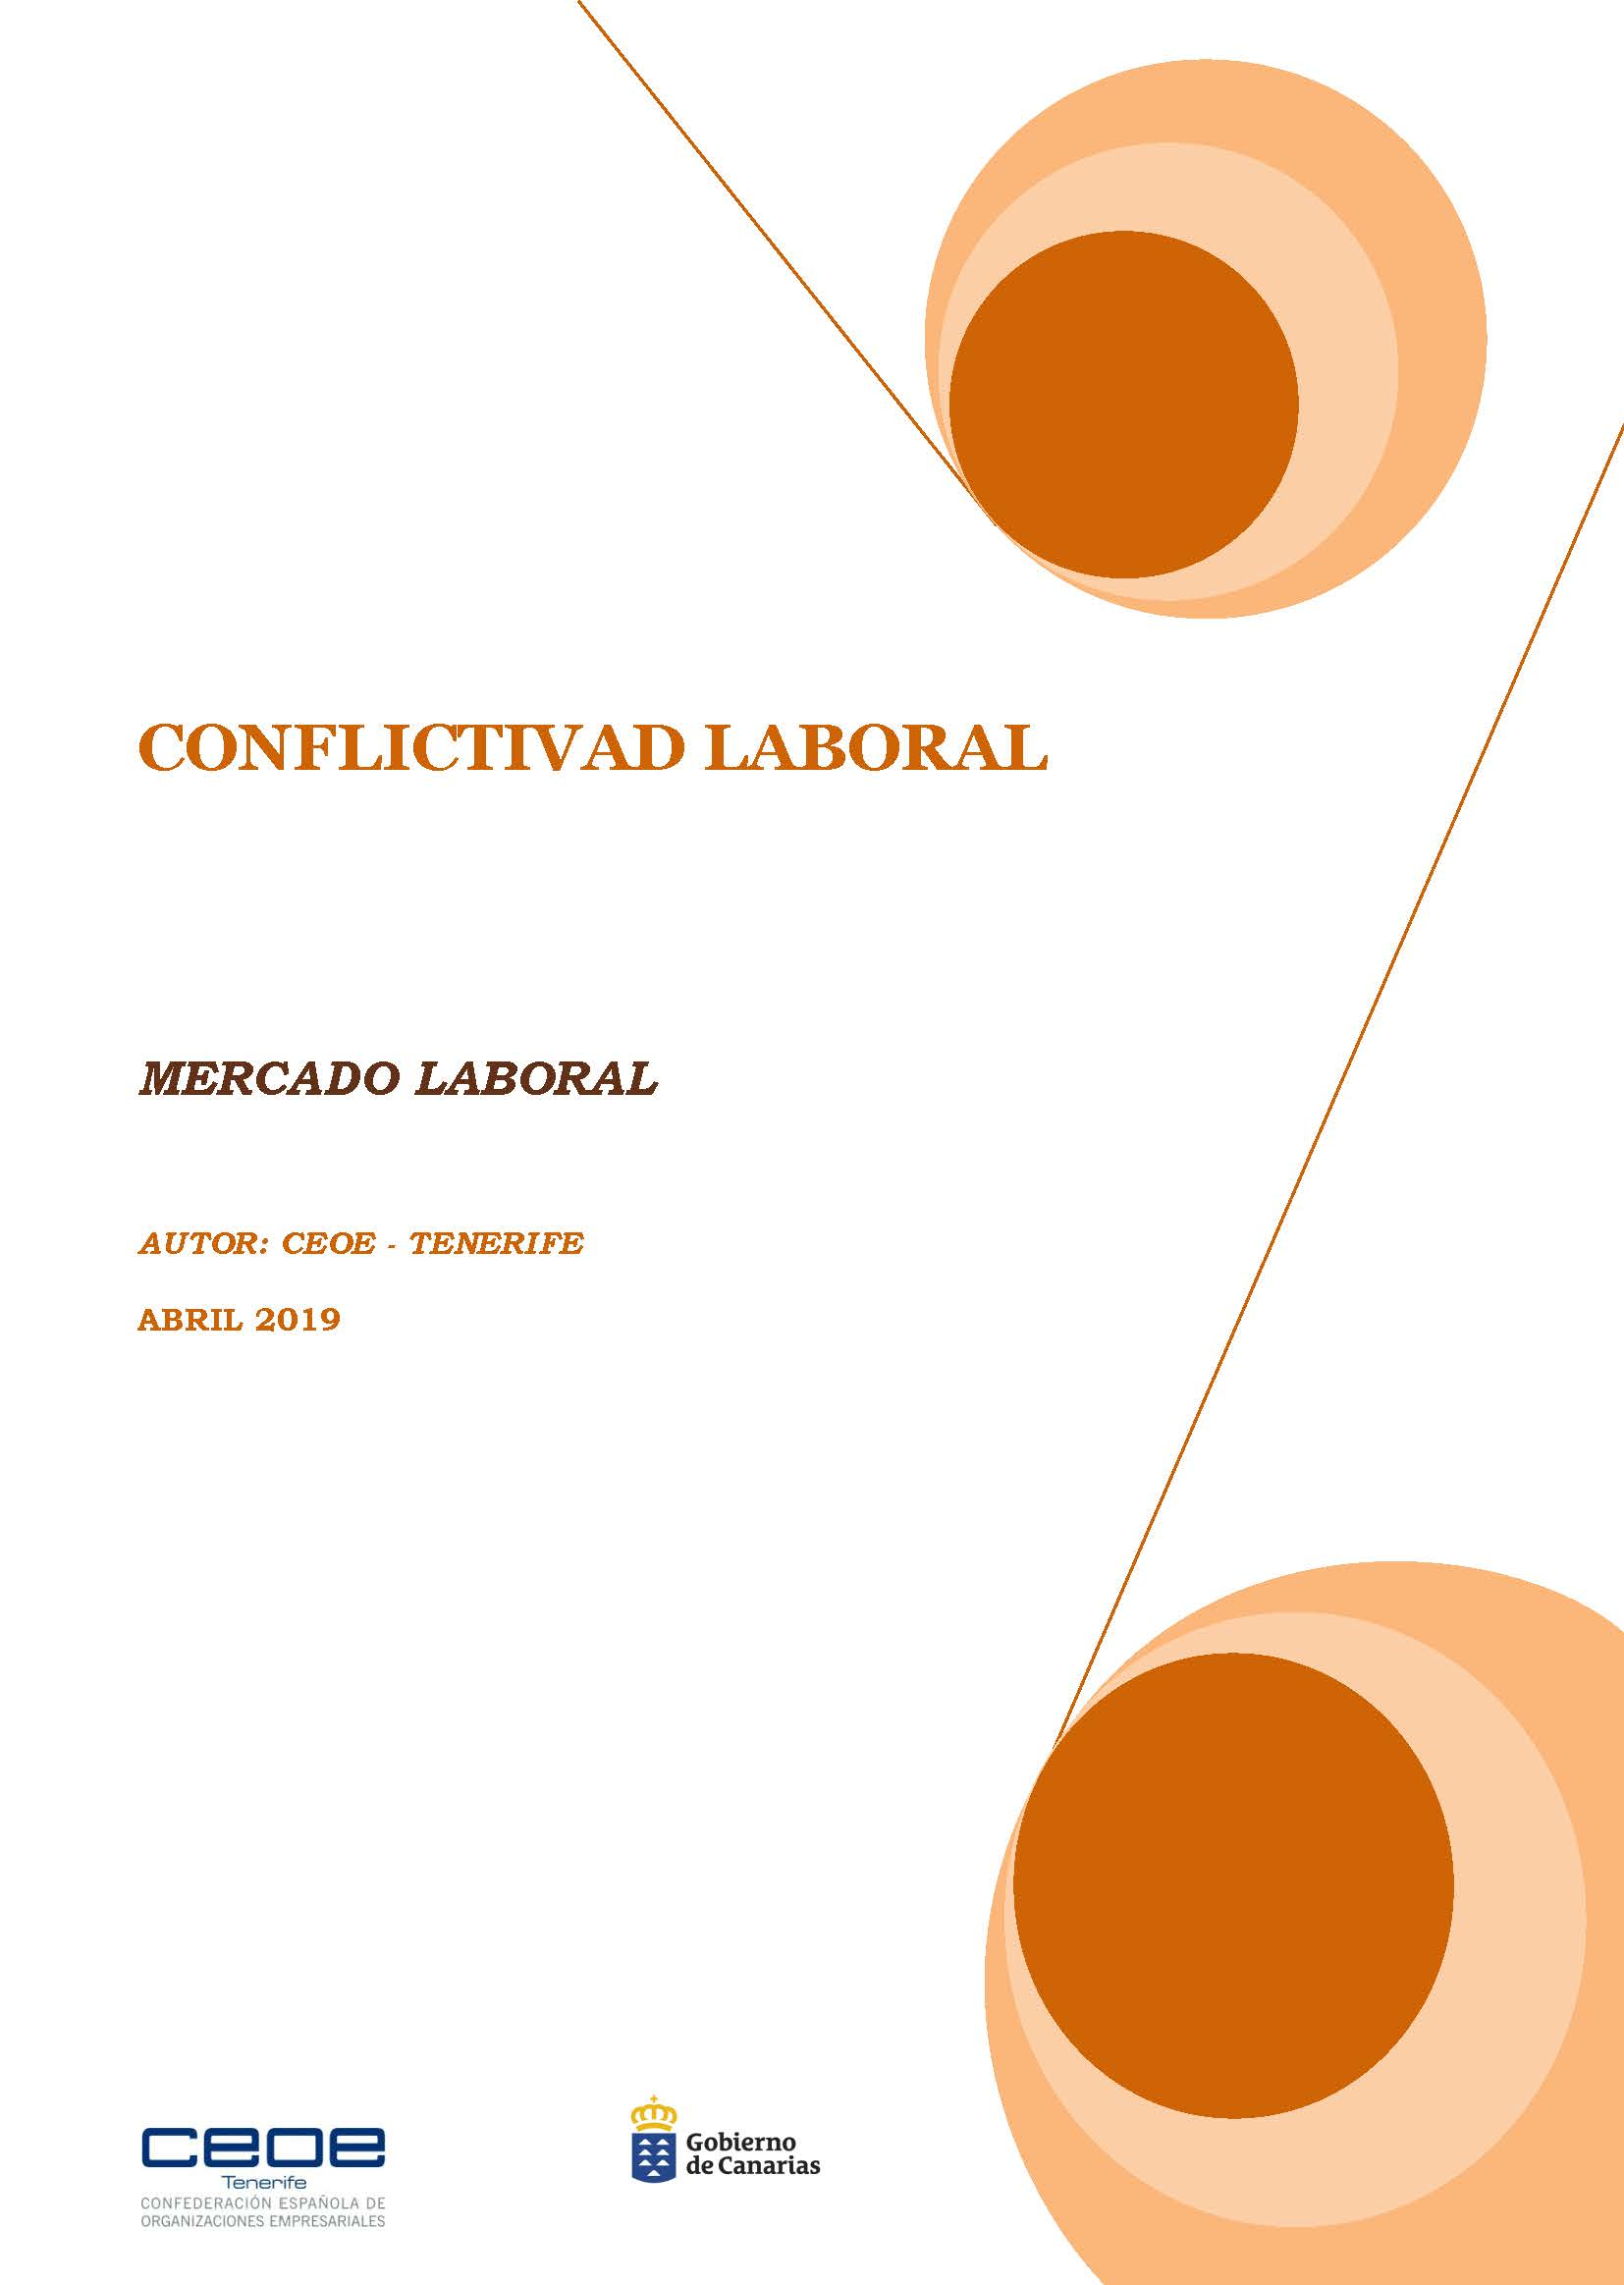 MERCADO LABORAL - CONFLICTIVIDAD LABORAL ABRIL 2019